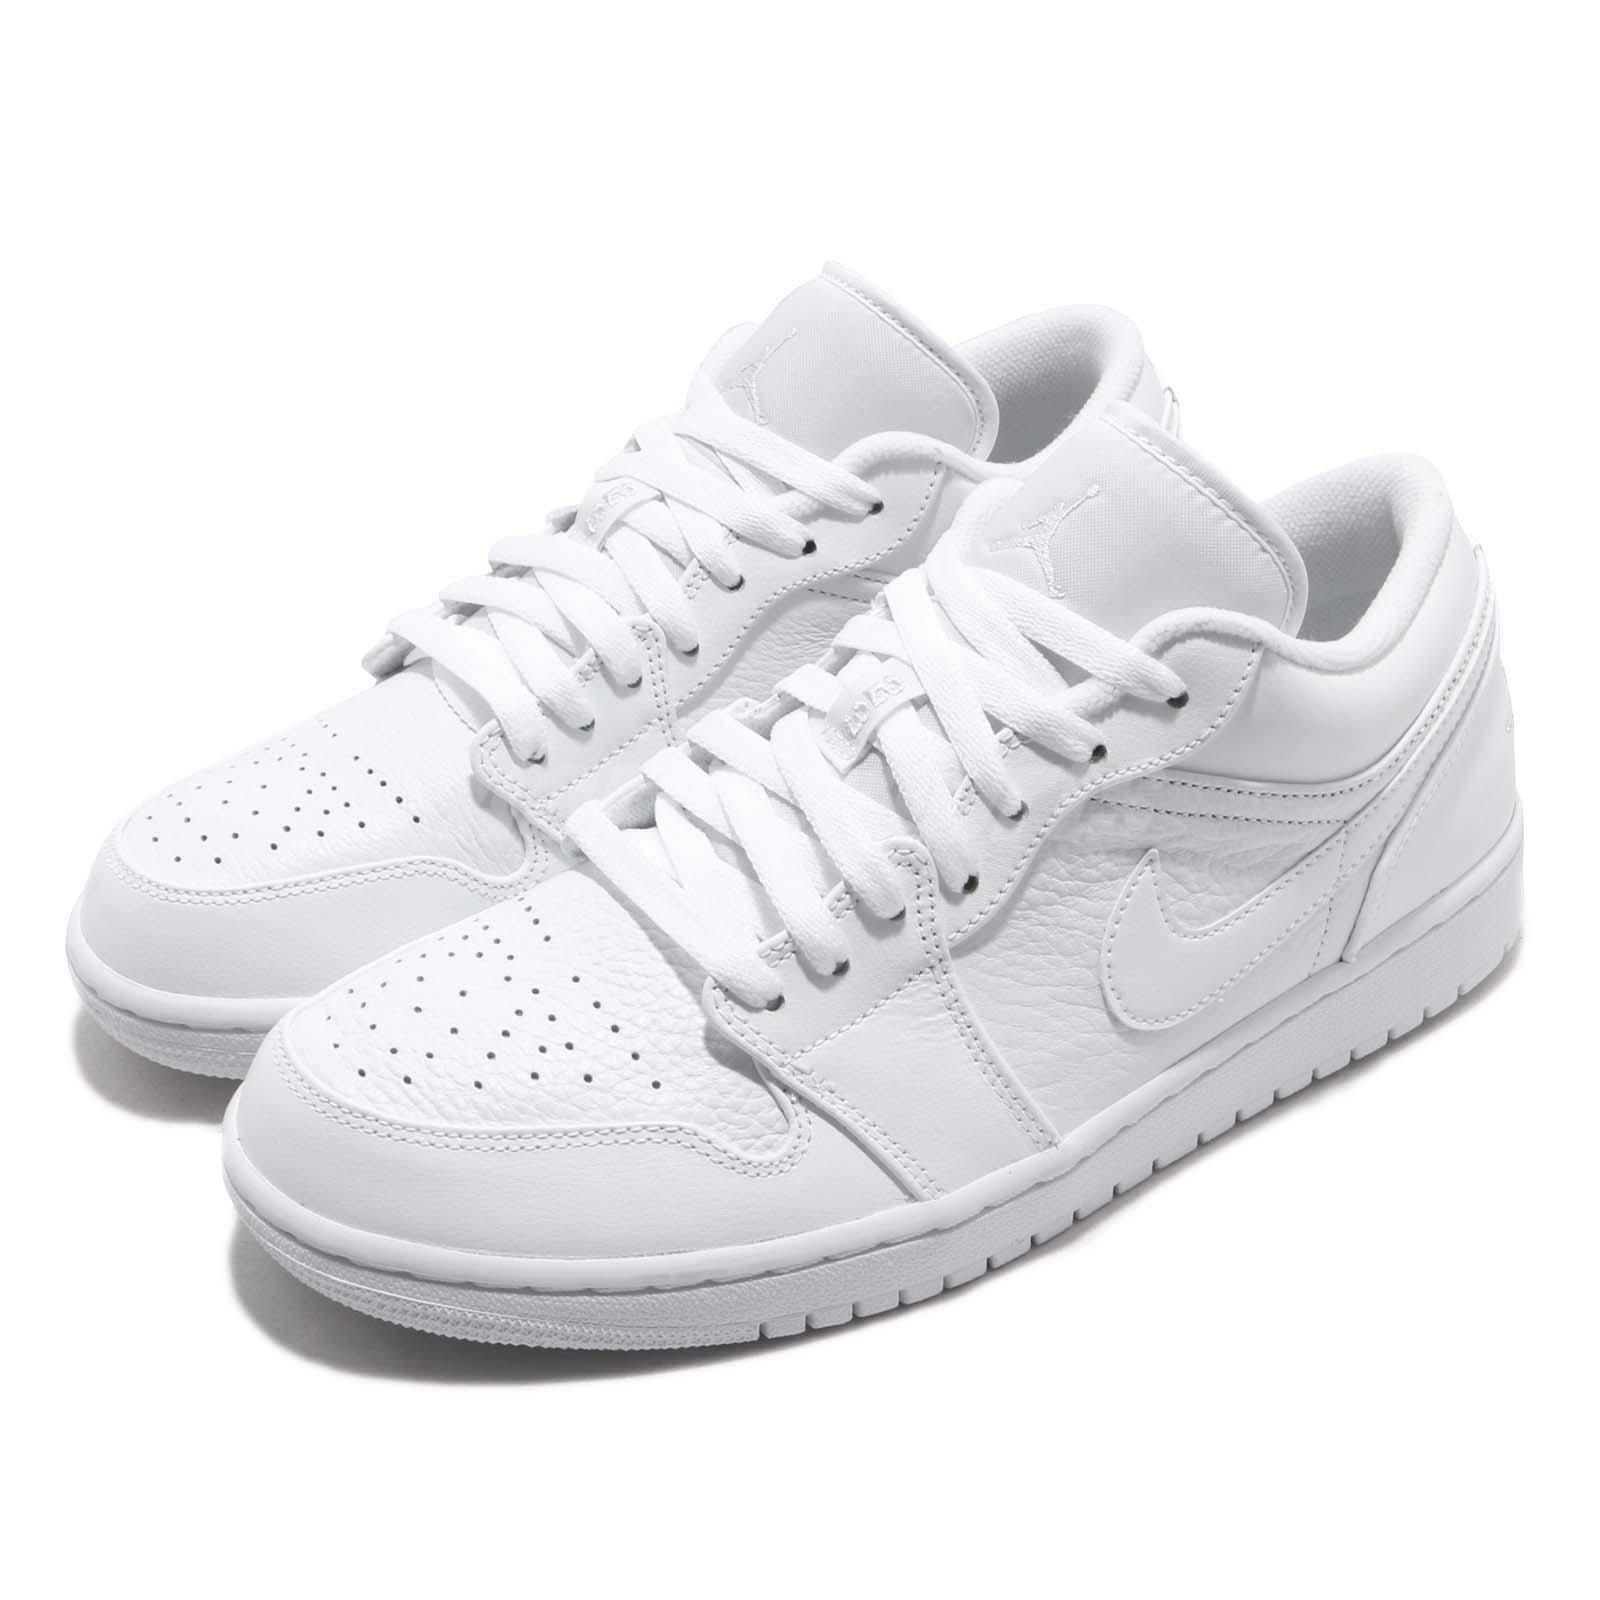 Jordan 1 Basketball Shoes 553558 I Aj1 White Air Men Low Details About Platinum Pure 111 Nike D9E2HI